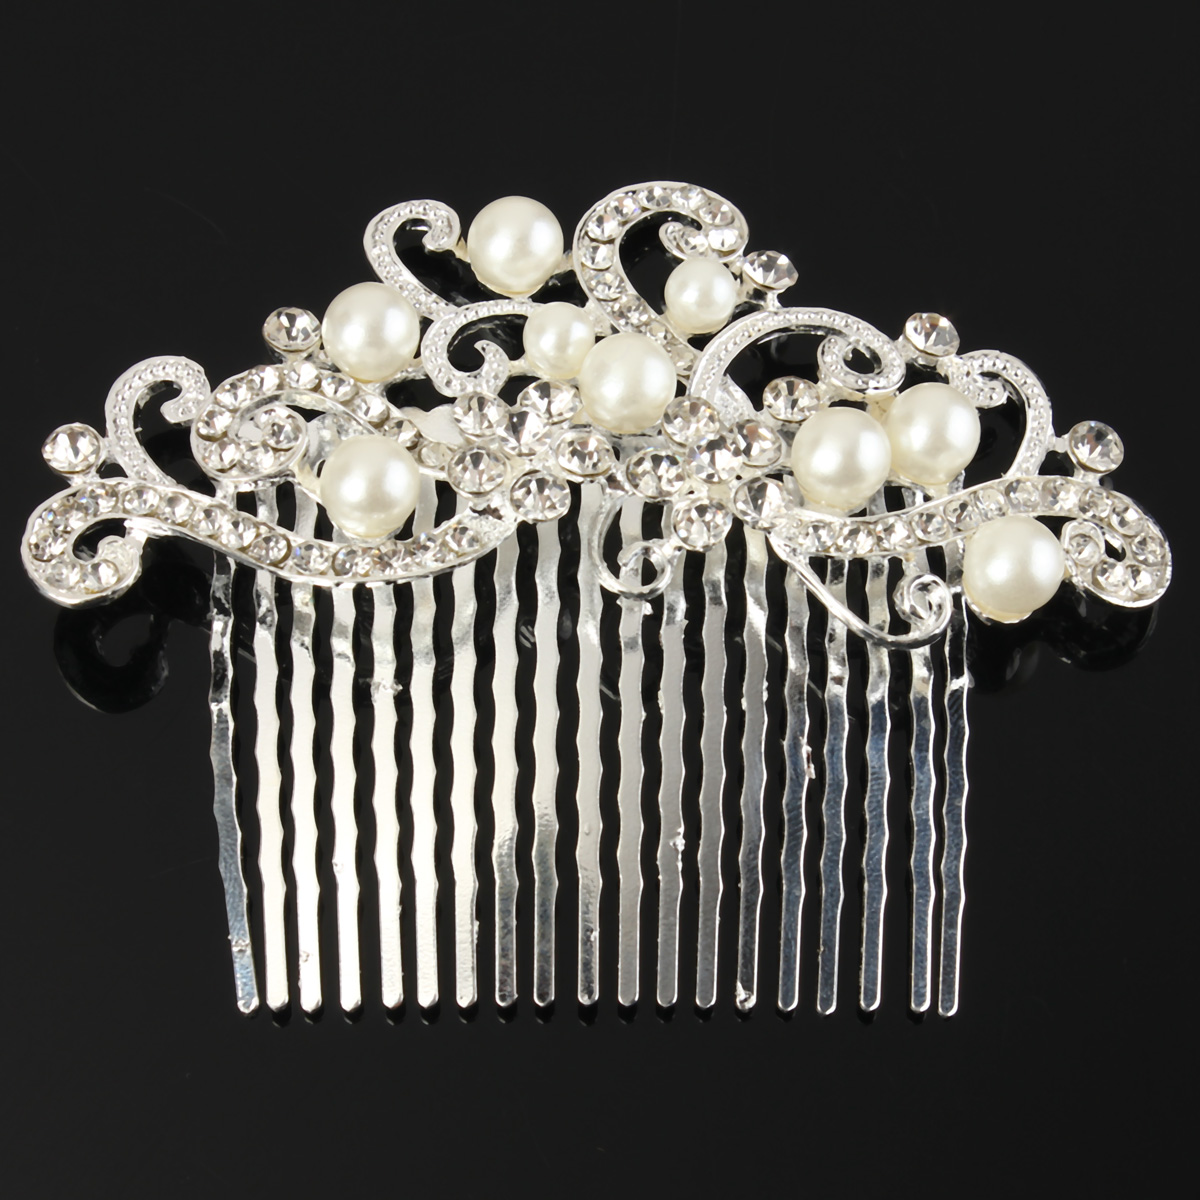 Bridal Wedding Pearl Crystal Rhinestone Hairpin Flowers Diamante Hair Clip Comb